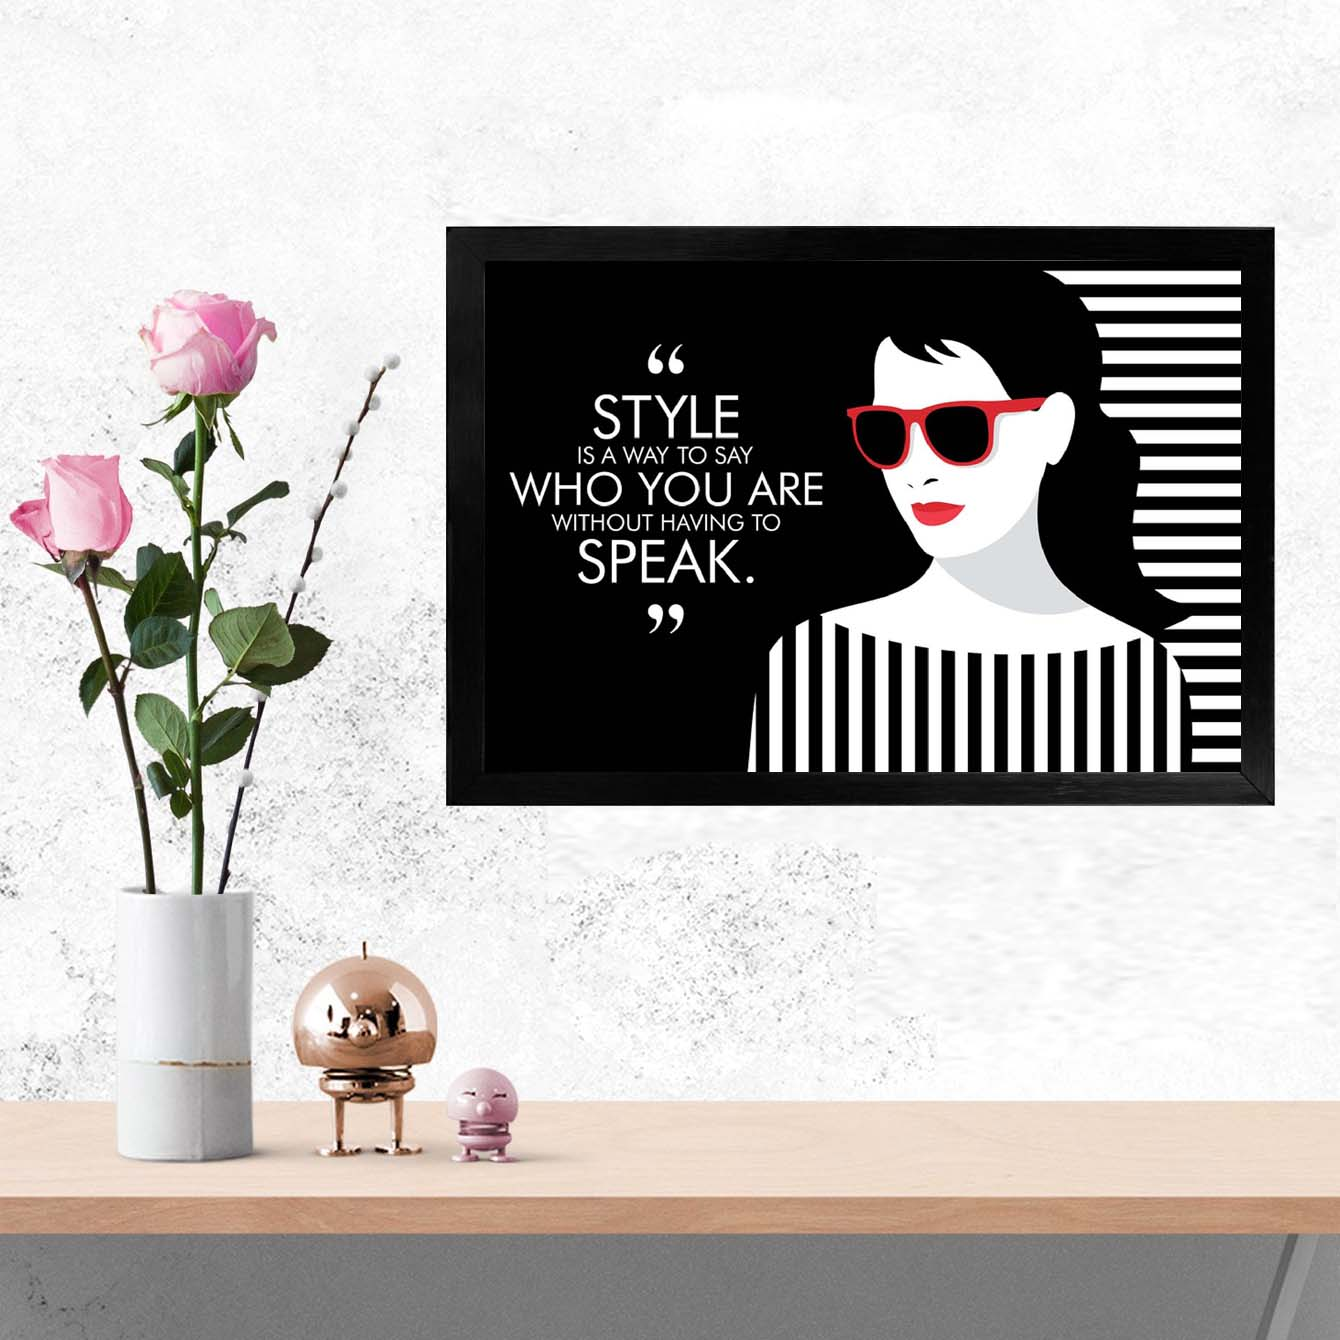 Style you are speak Pop Art Glass Framed Posters & Artprints